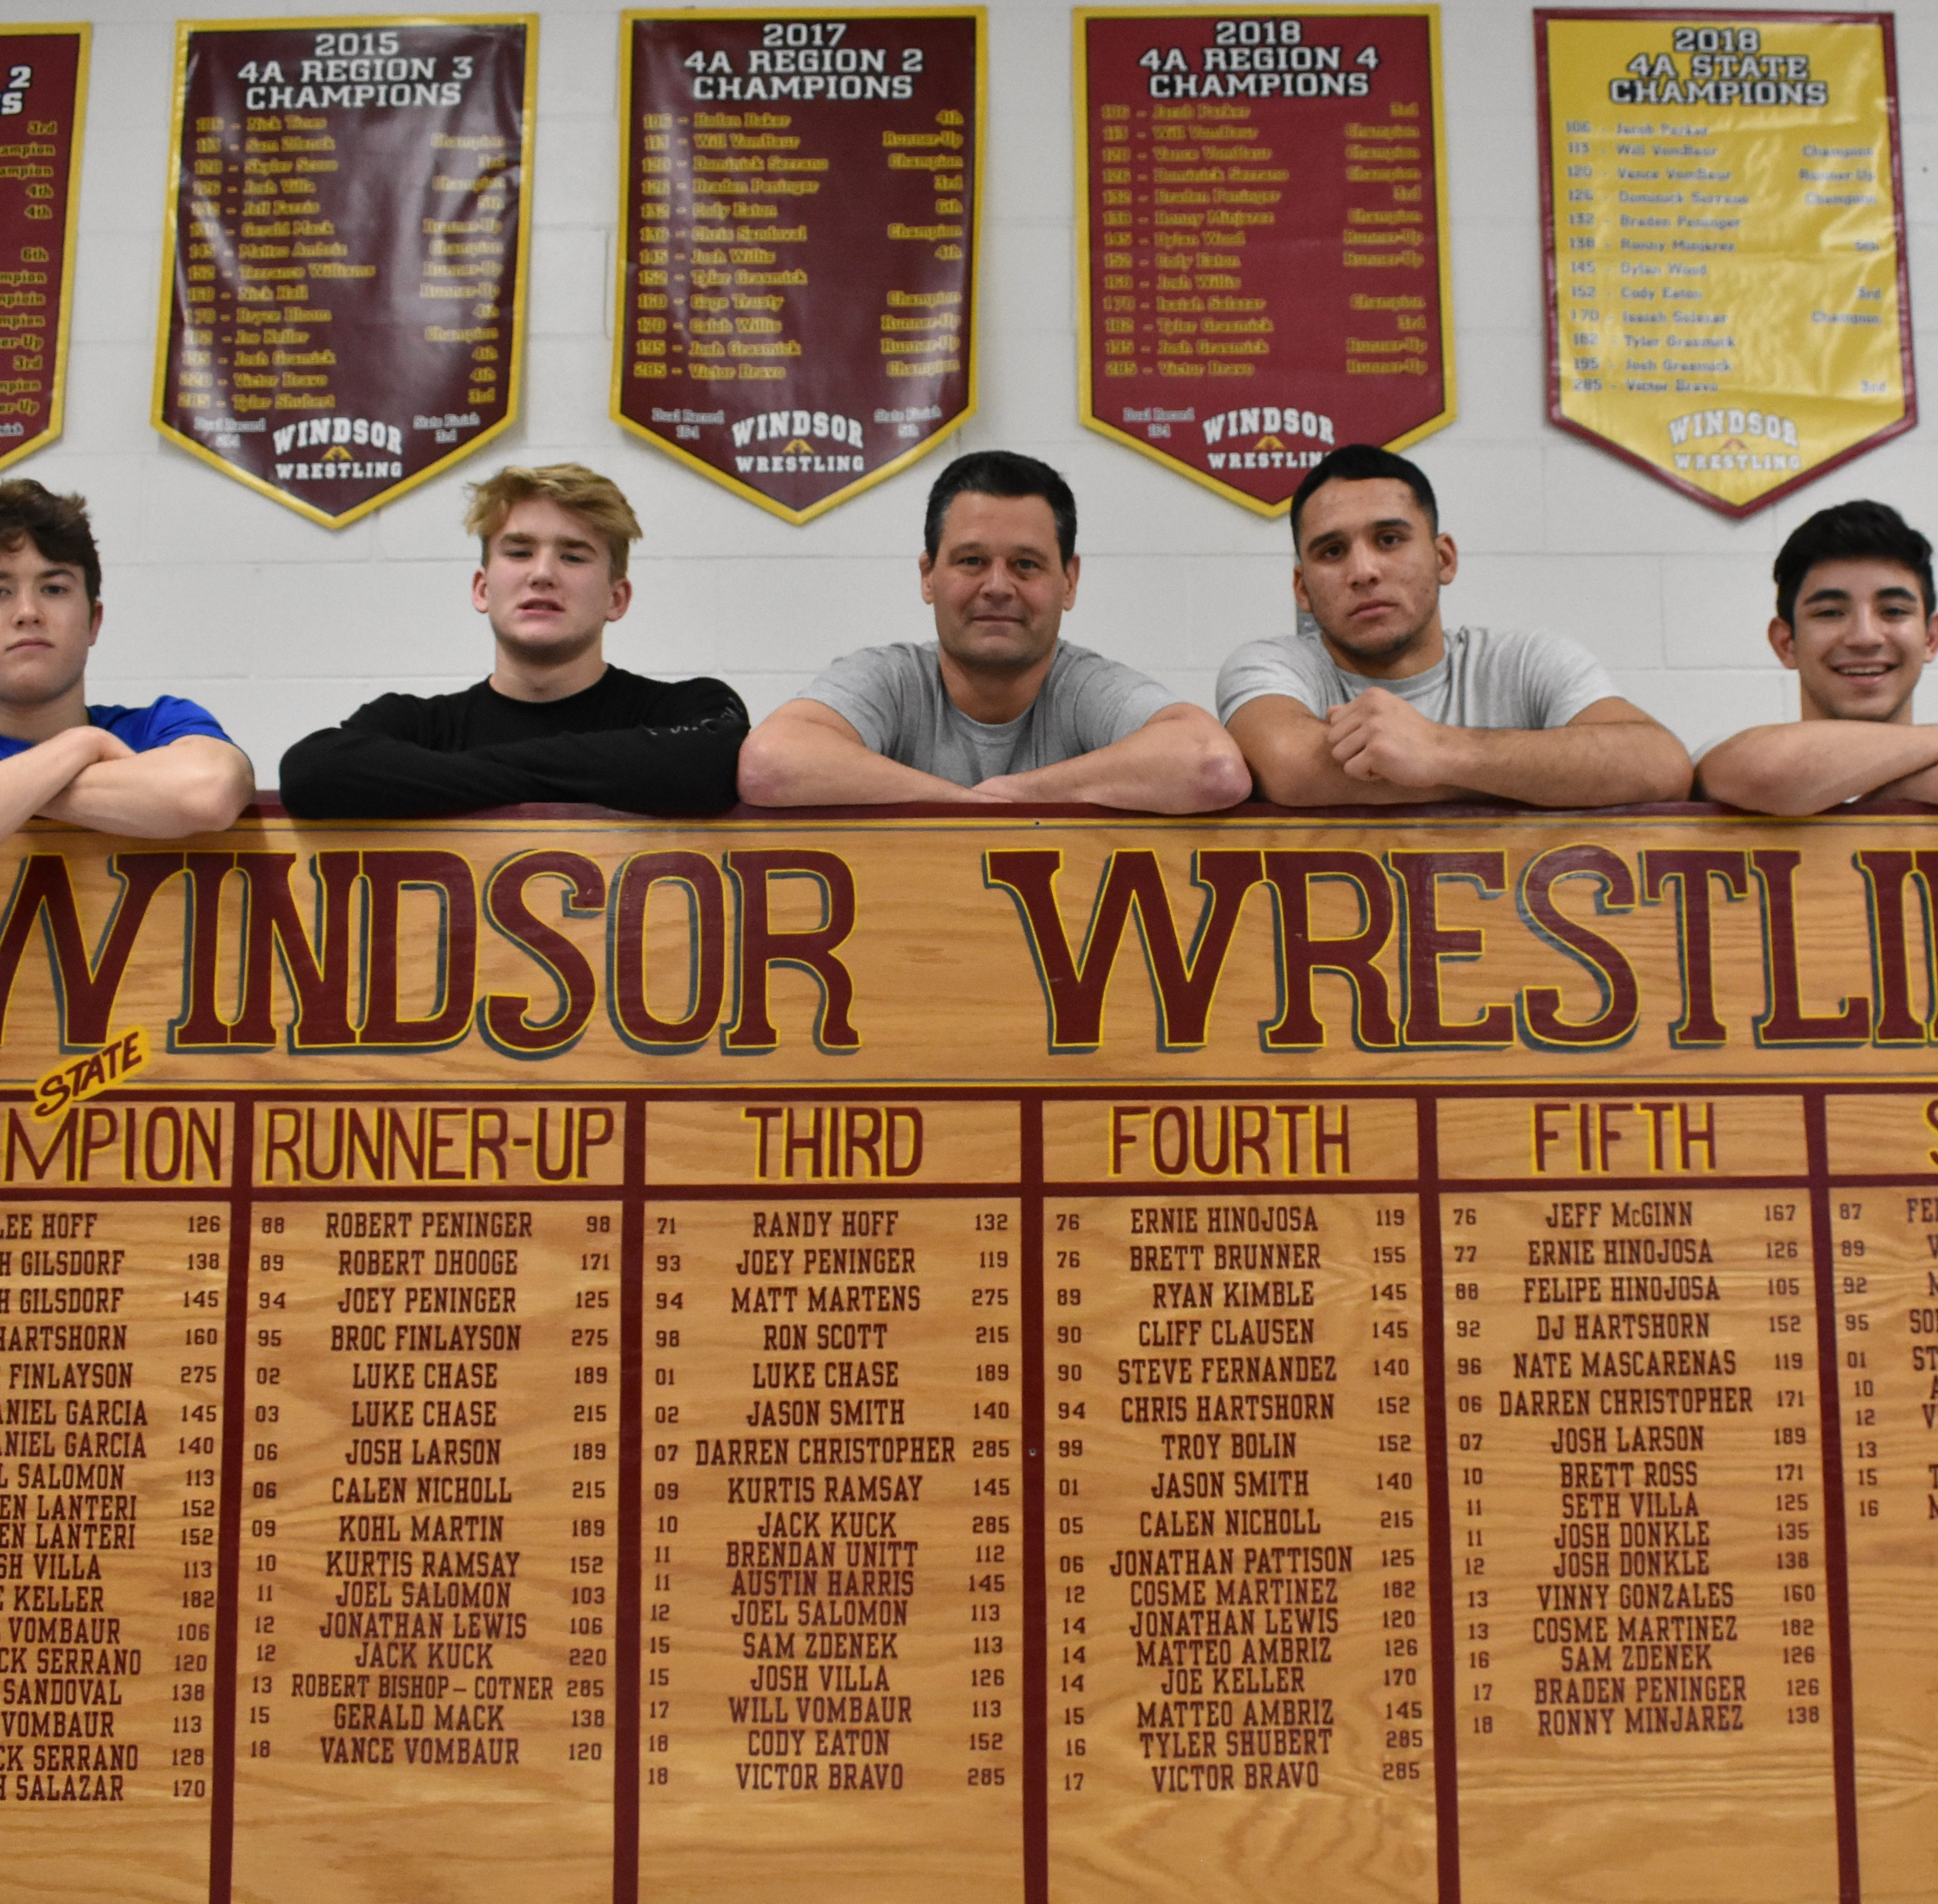 Meet the wizard behind the winning Windsor wrestling team